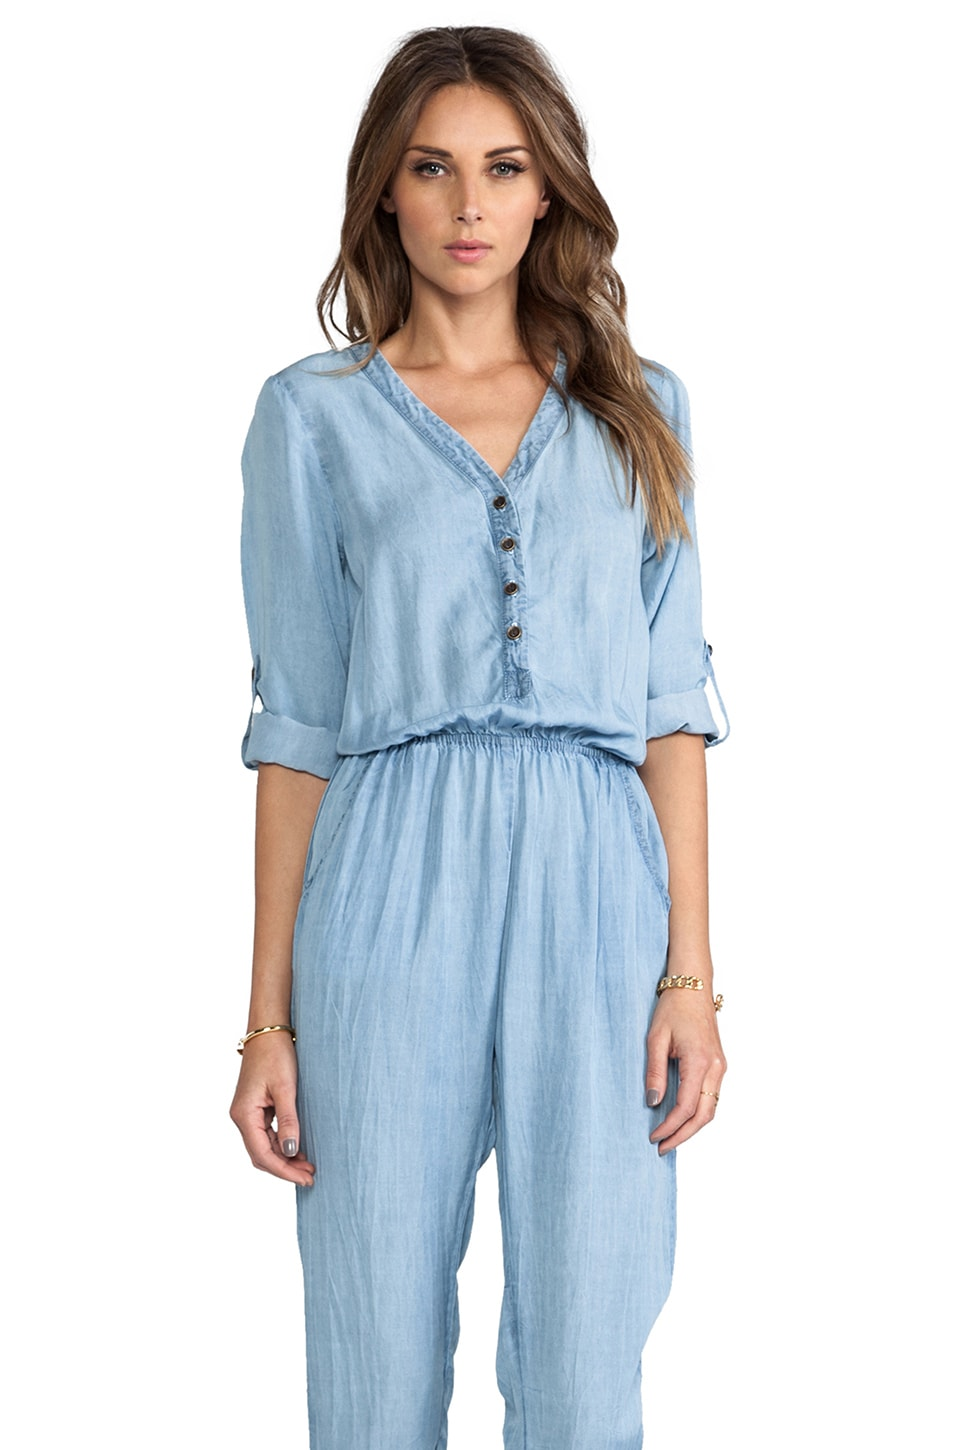 SAM&LAVI Ryleigh Jumper in Chambray